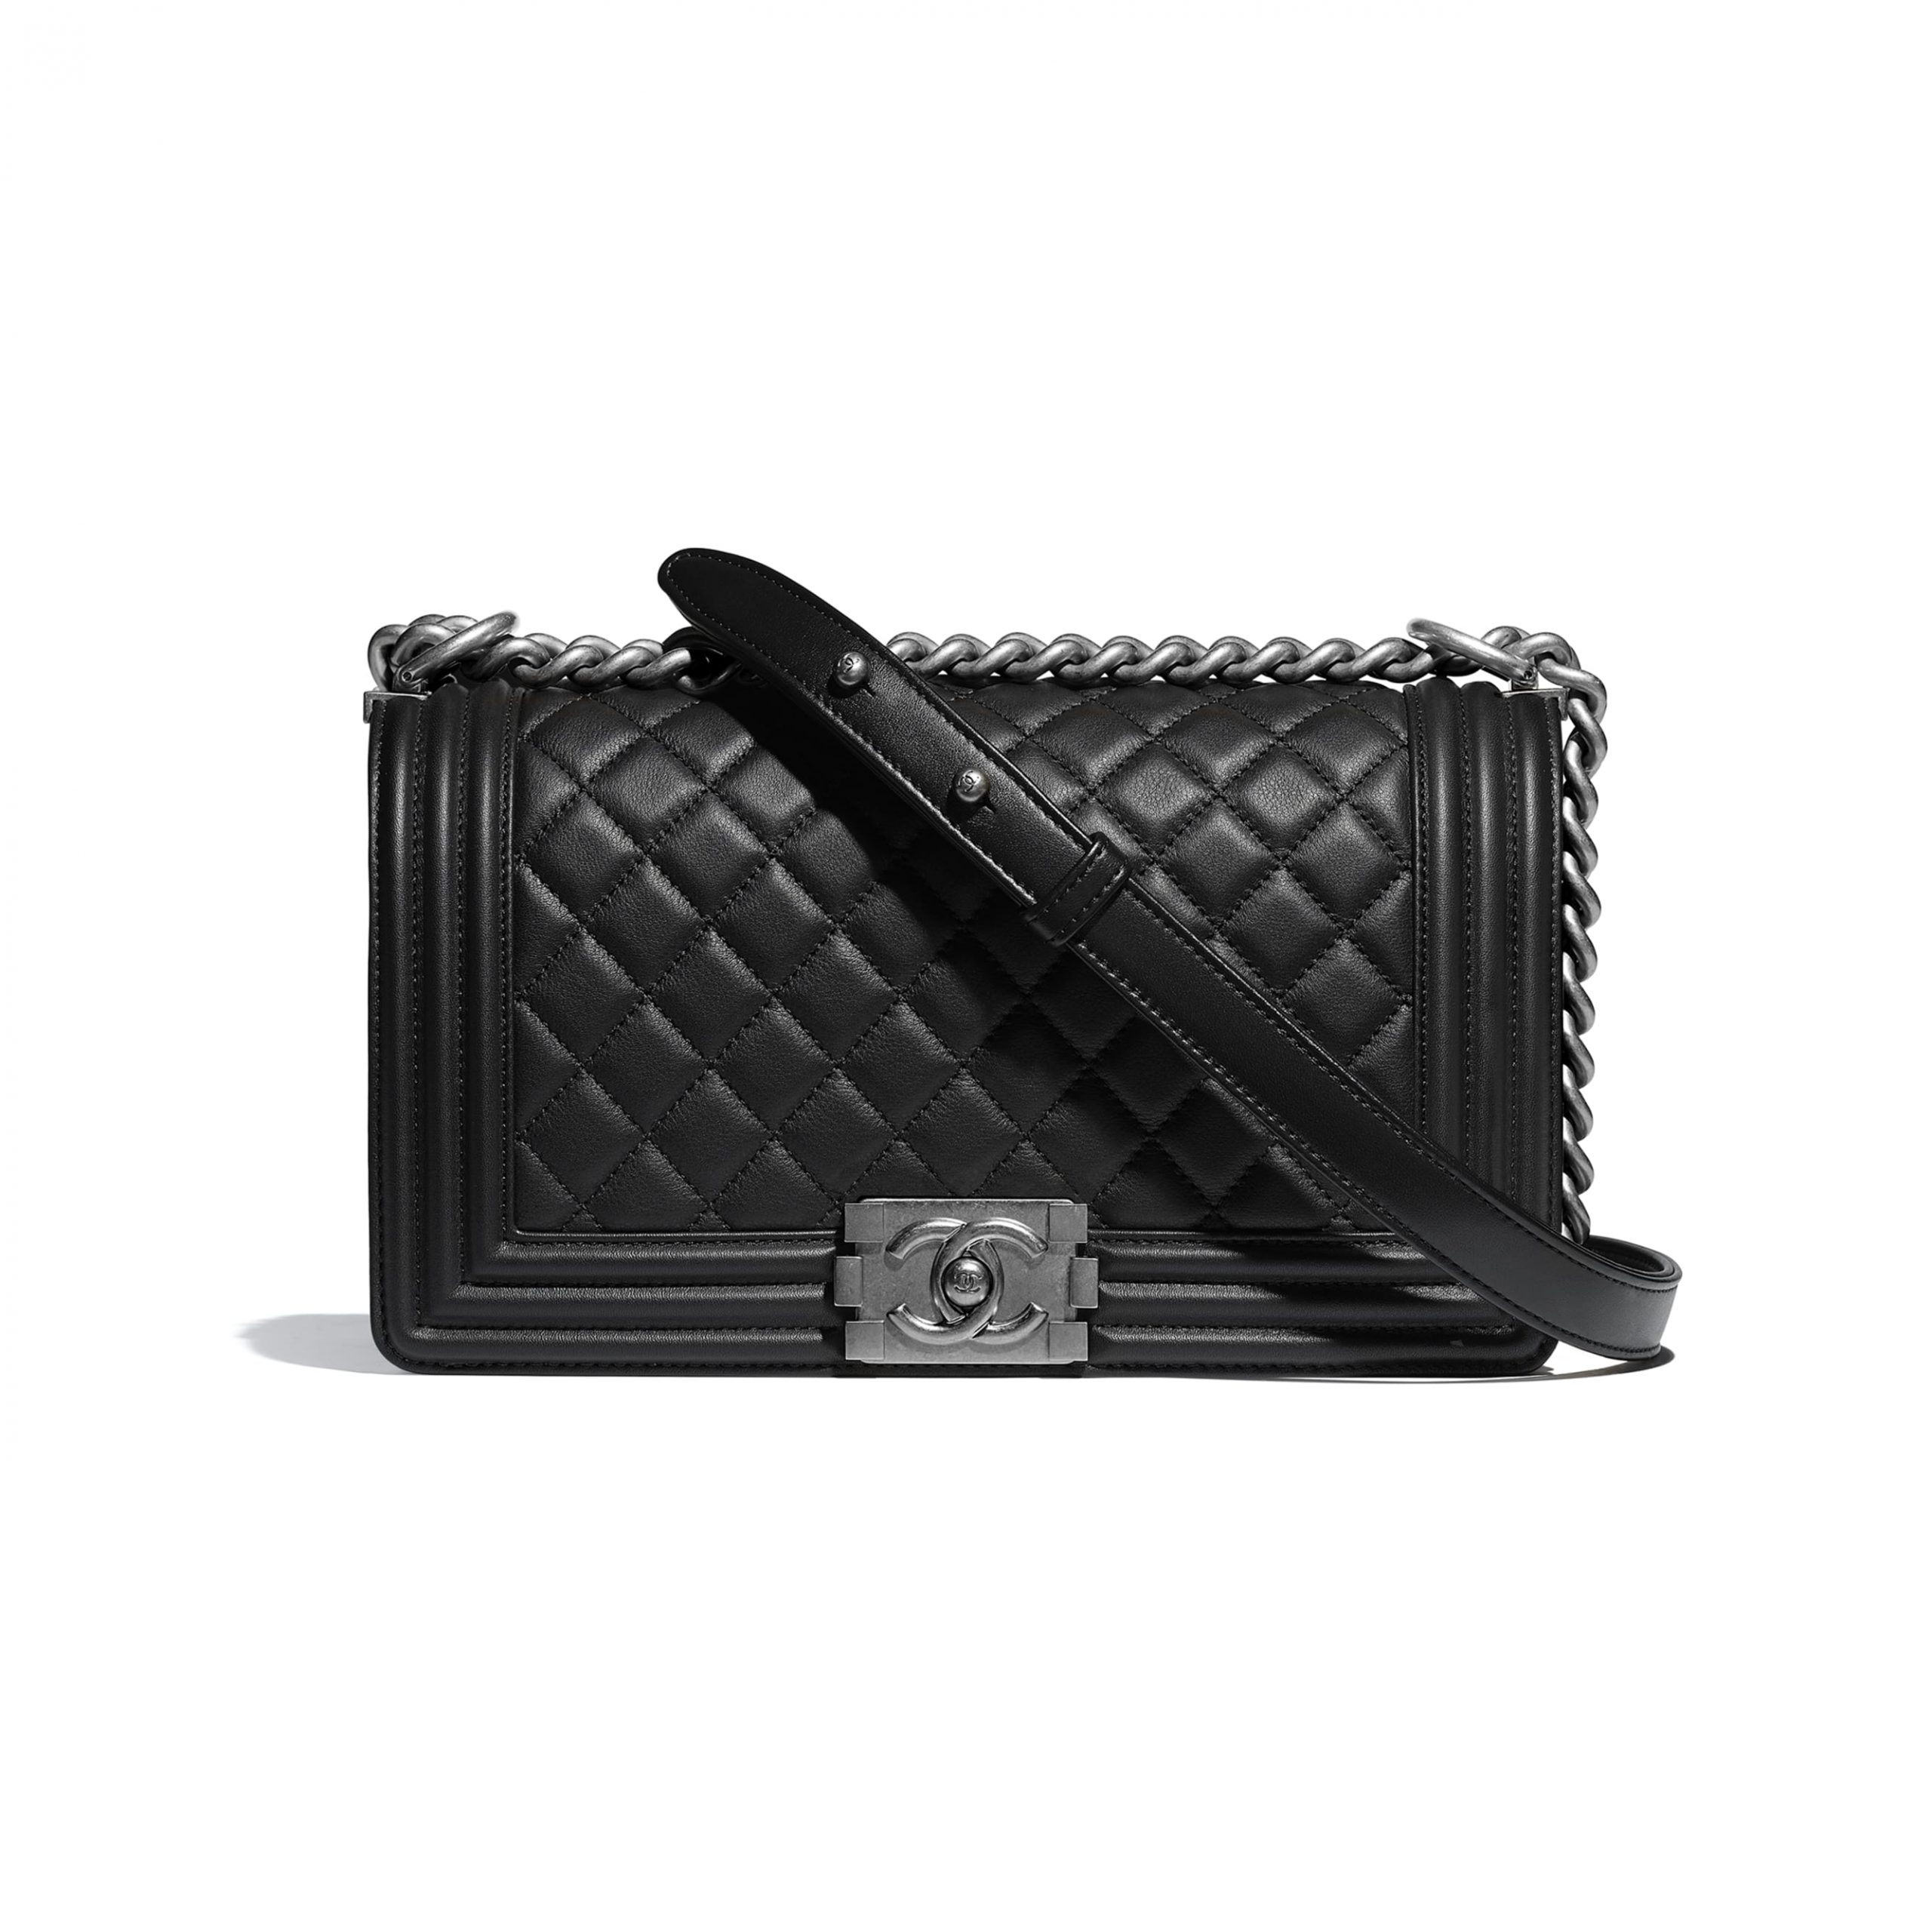 boy-chanel-handbag-black-calfskin-ruthenium-finish-metal-calfskin-ruthenium-finish-metal-packshot-default-a67086y0995394305-8812352864286.jpg